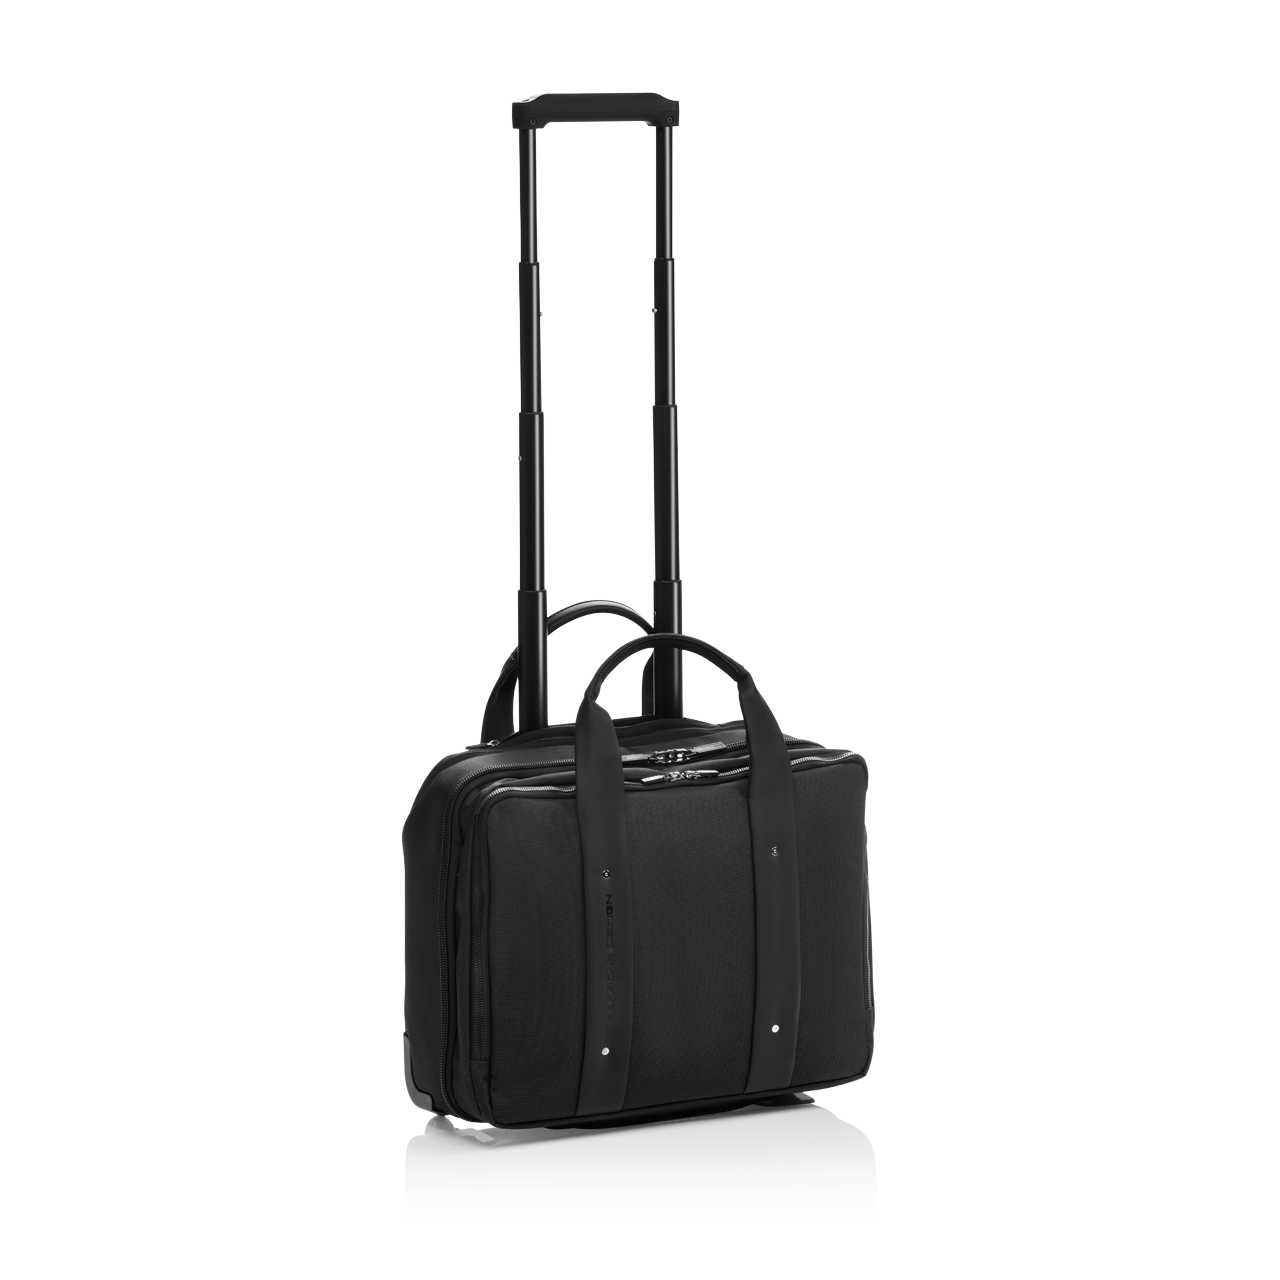 CARGON 2.5 TROLLEY BRIEFBAG S - фото 1